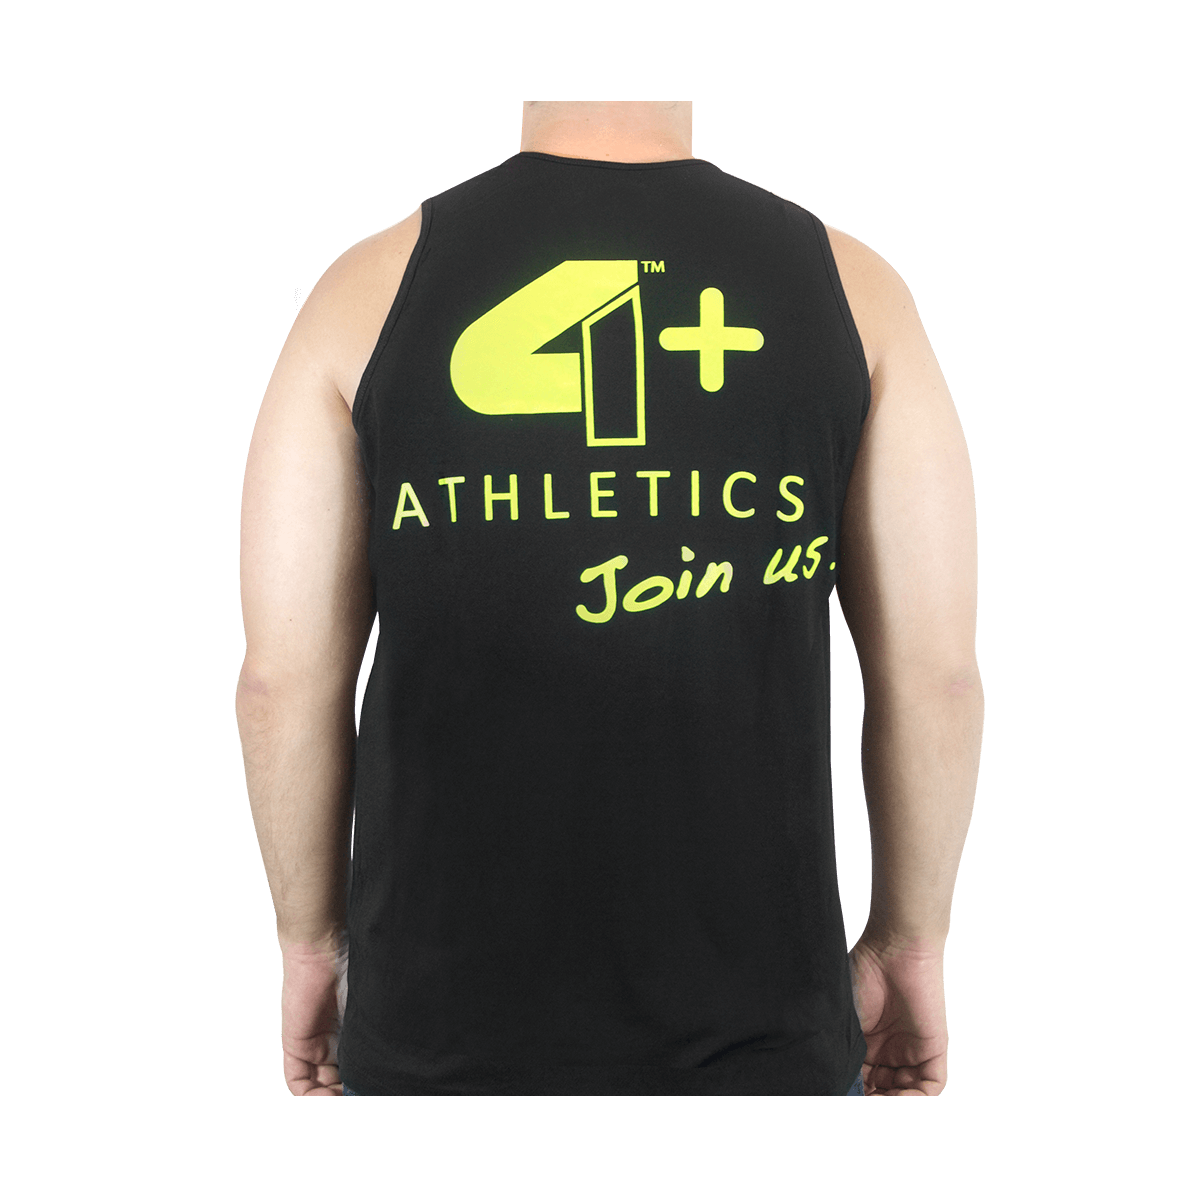 5947688 camiseta-regata-join-us-preta-4-athletics -5234 z2 635877836693708000.png 96158a1284b